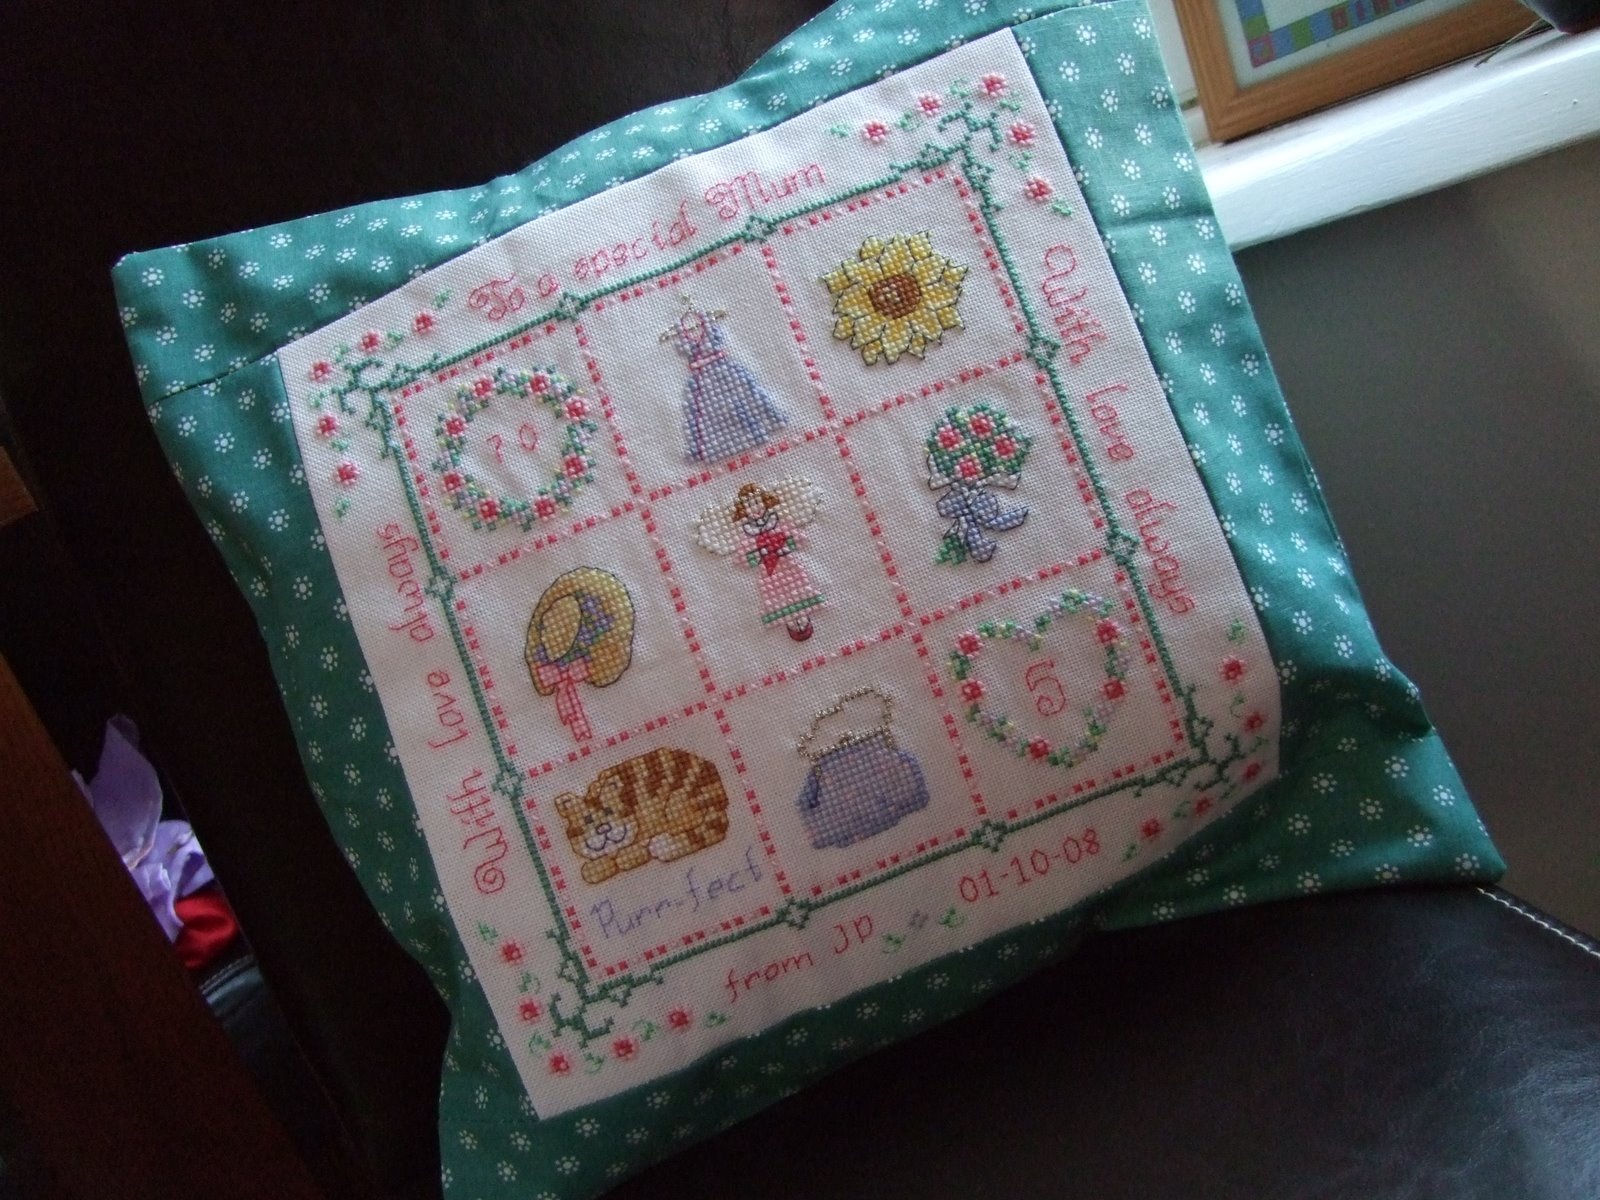 Ginnies Cross Stitch And Dressmaking Finishes Pillow With Embroider Sweet Dream Moms Cushion For Her 70th